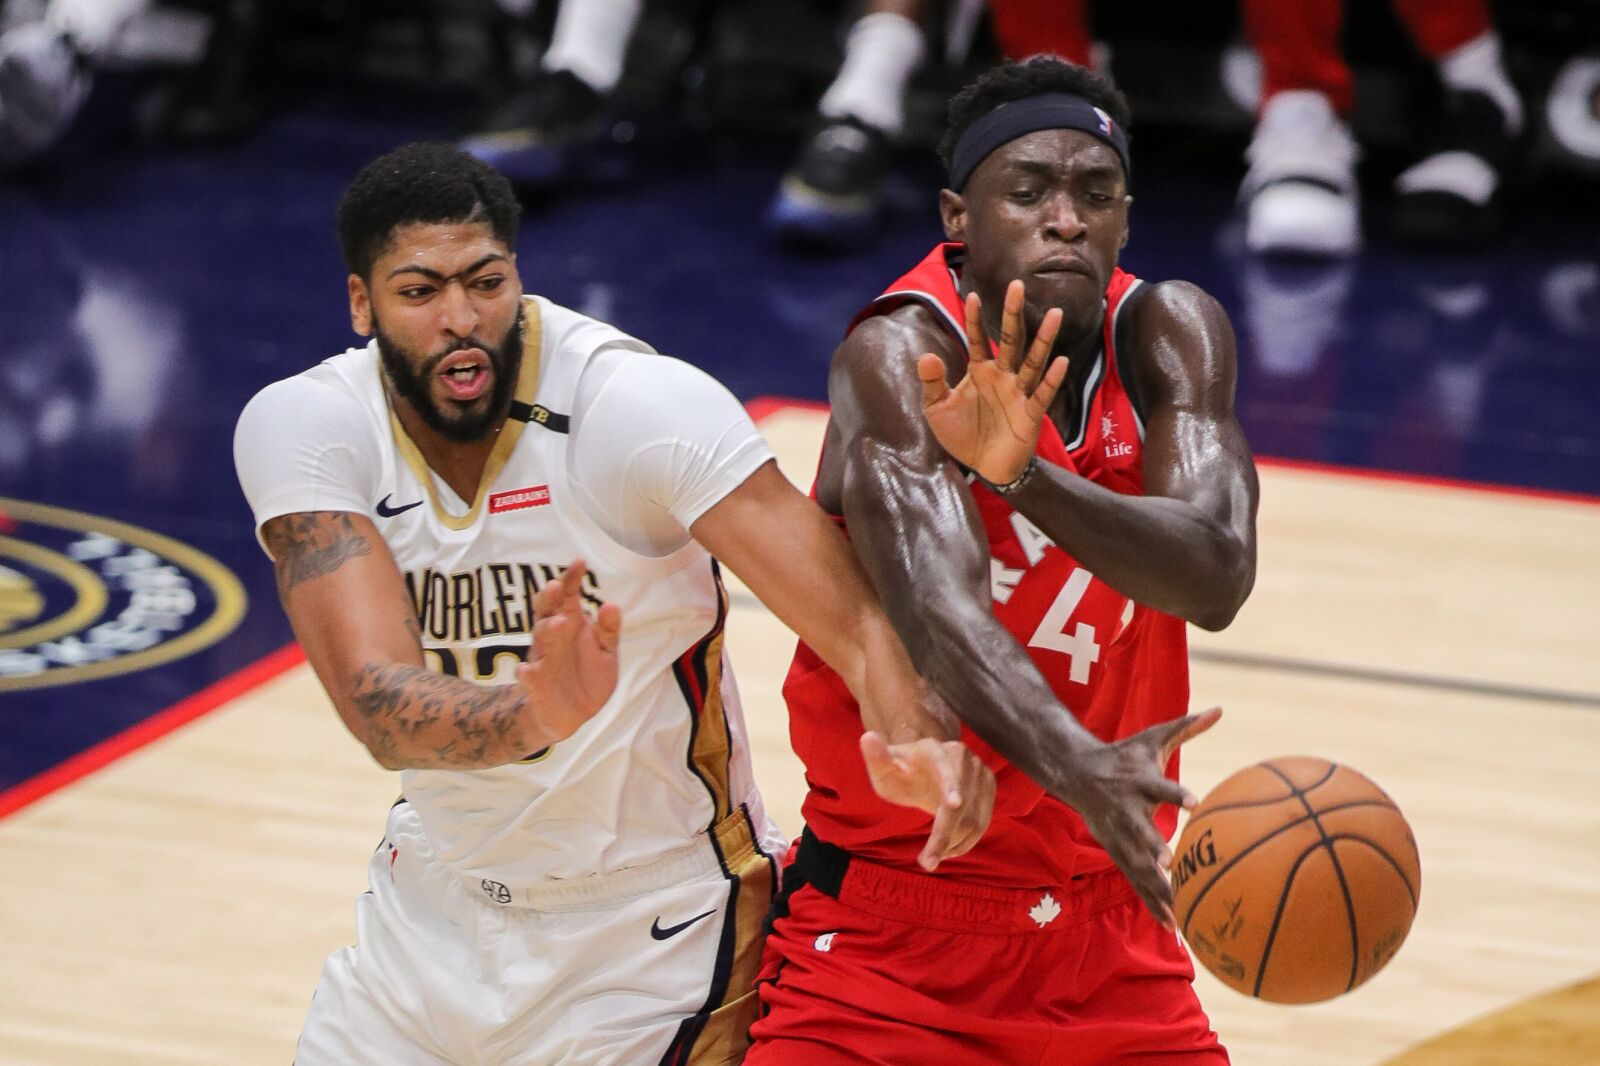 Three takeaways from the Toronto Raptors shootout win vs the New Orleans Pelicans